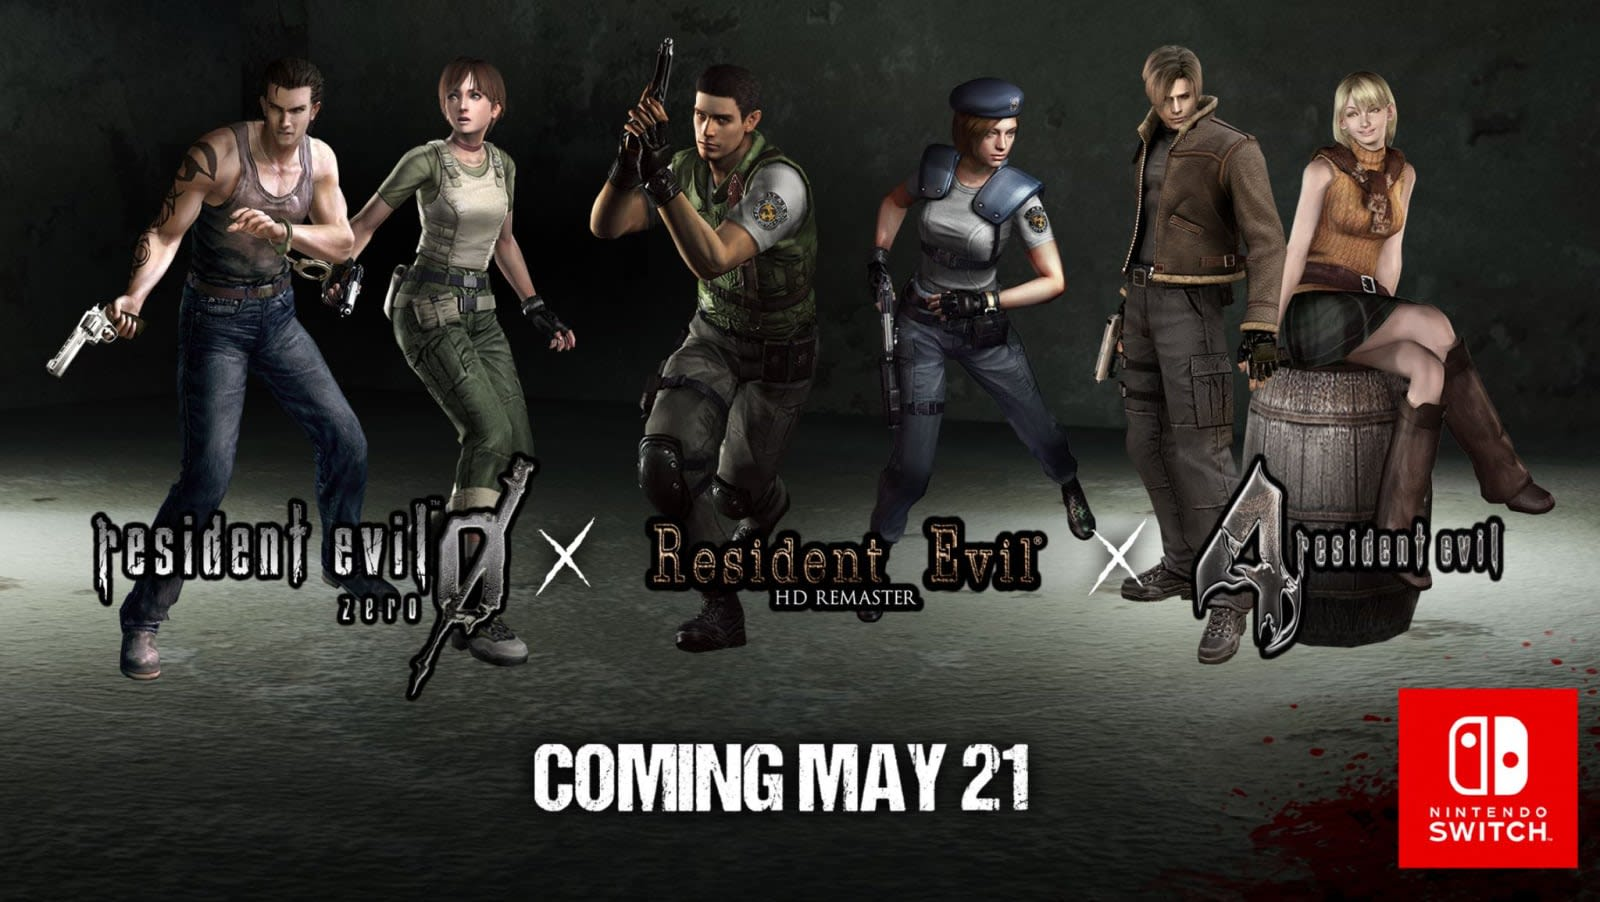 Three classic 'Resident Evil' games come to the Switch on